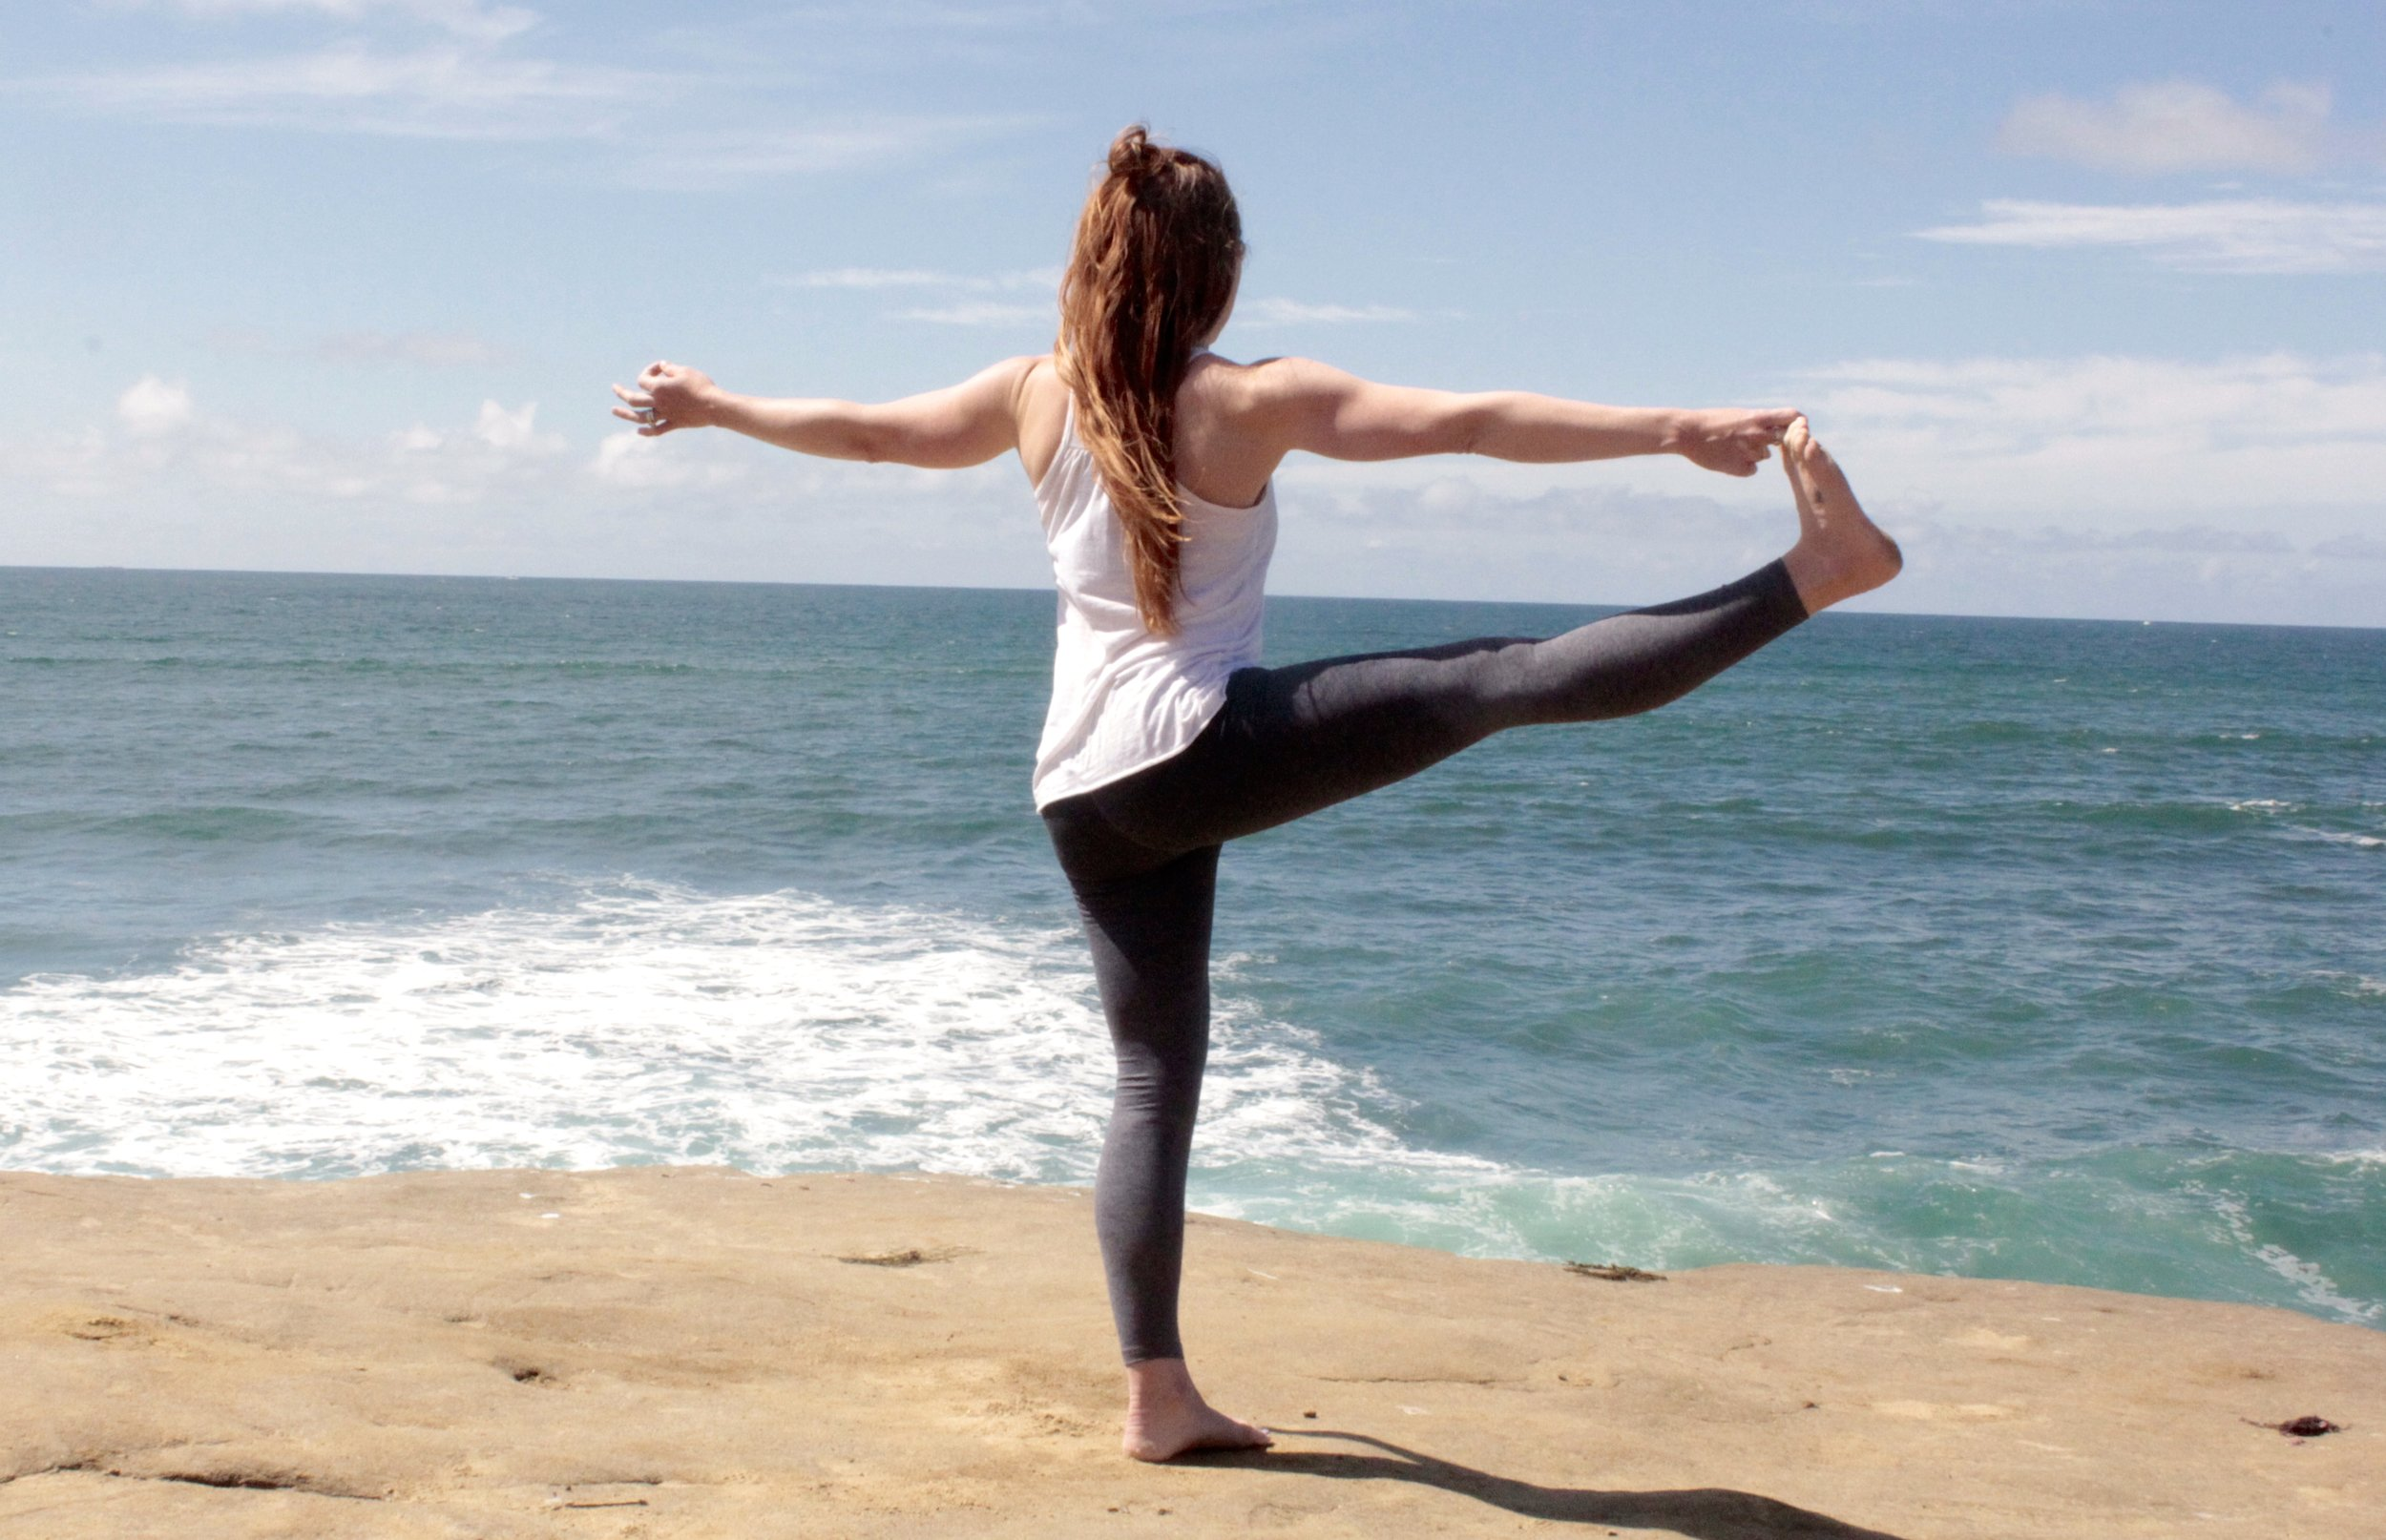 Experience an alternative way to practice yoga. - Taking yoga outside of a studio setting makes things less intimidating, more convenient and sustainable for YOU.Work with me online or in-person to gain more insight and work toward your unique wellness goal.